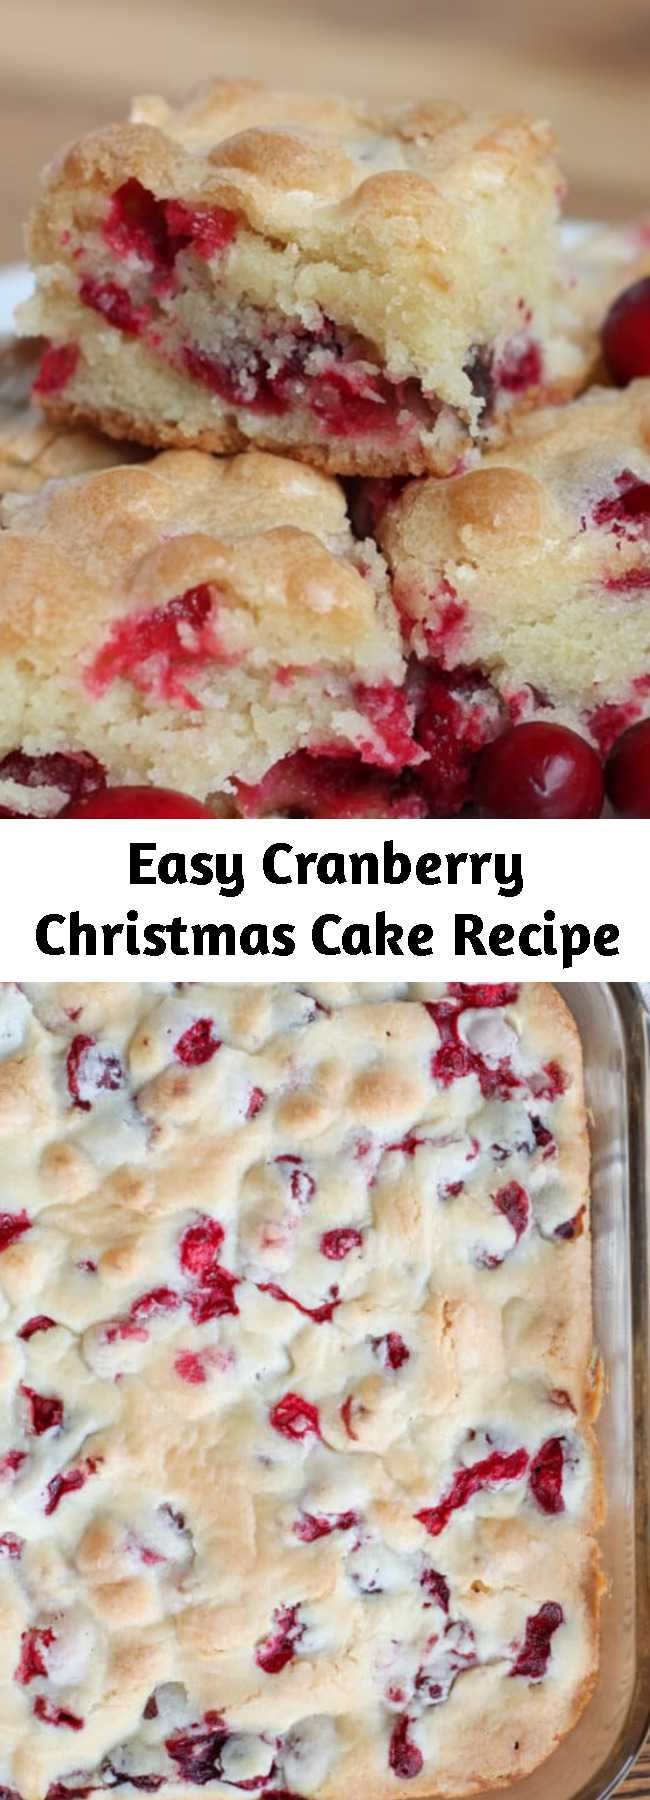 Easy Cranberry Christmas Cake Recipe - Tart cranberries, sweet buttery cake, and a fantastic texture all combined to basically beg me to eat another piece. This Cranberry Christmas Cake is one of those recipes that is an instant favorite every single time someone new tastes it.